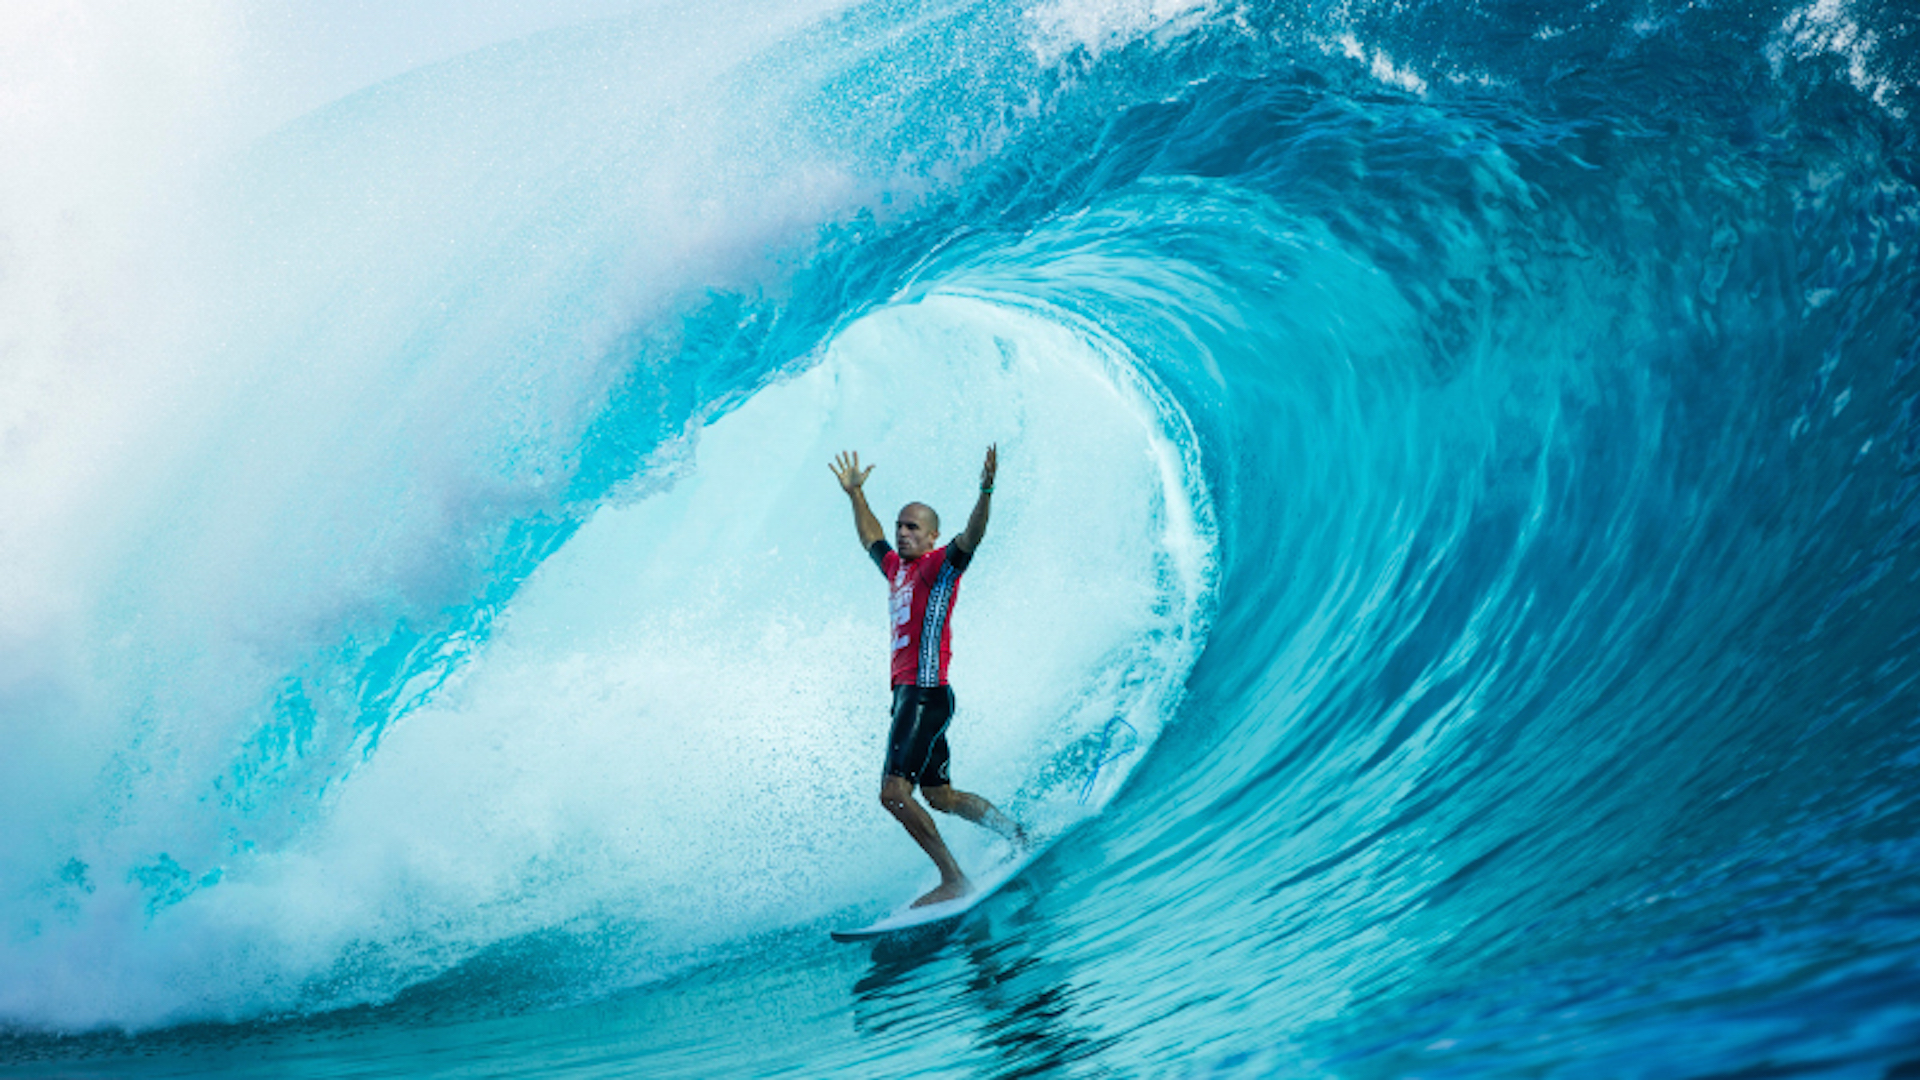 12 month girl photo ideas - Fantasy WSL Create your own surf tour